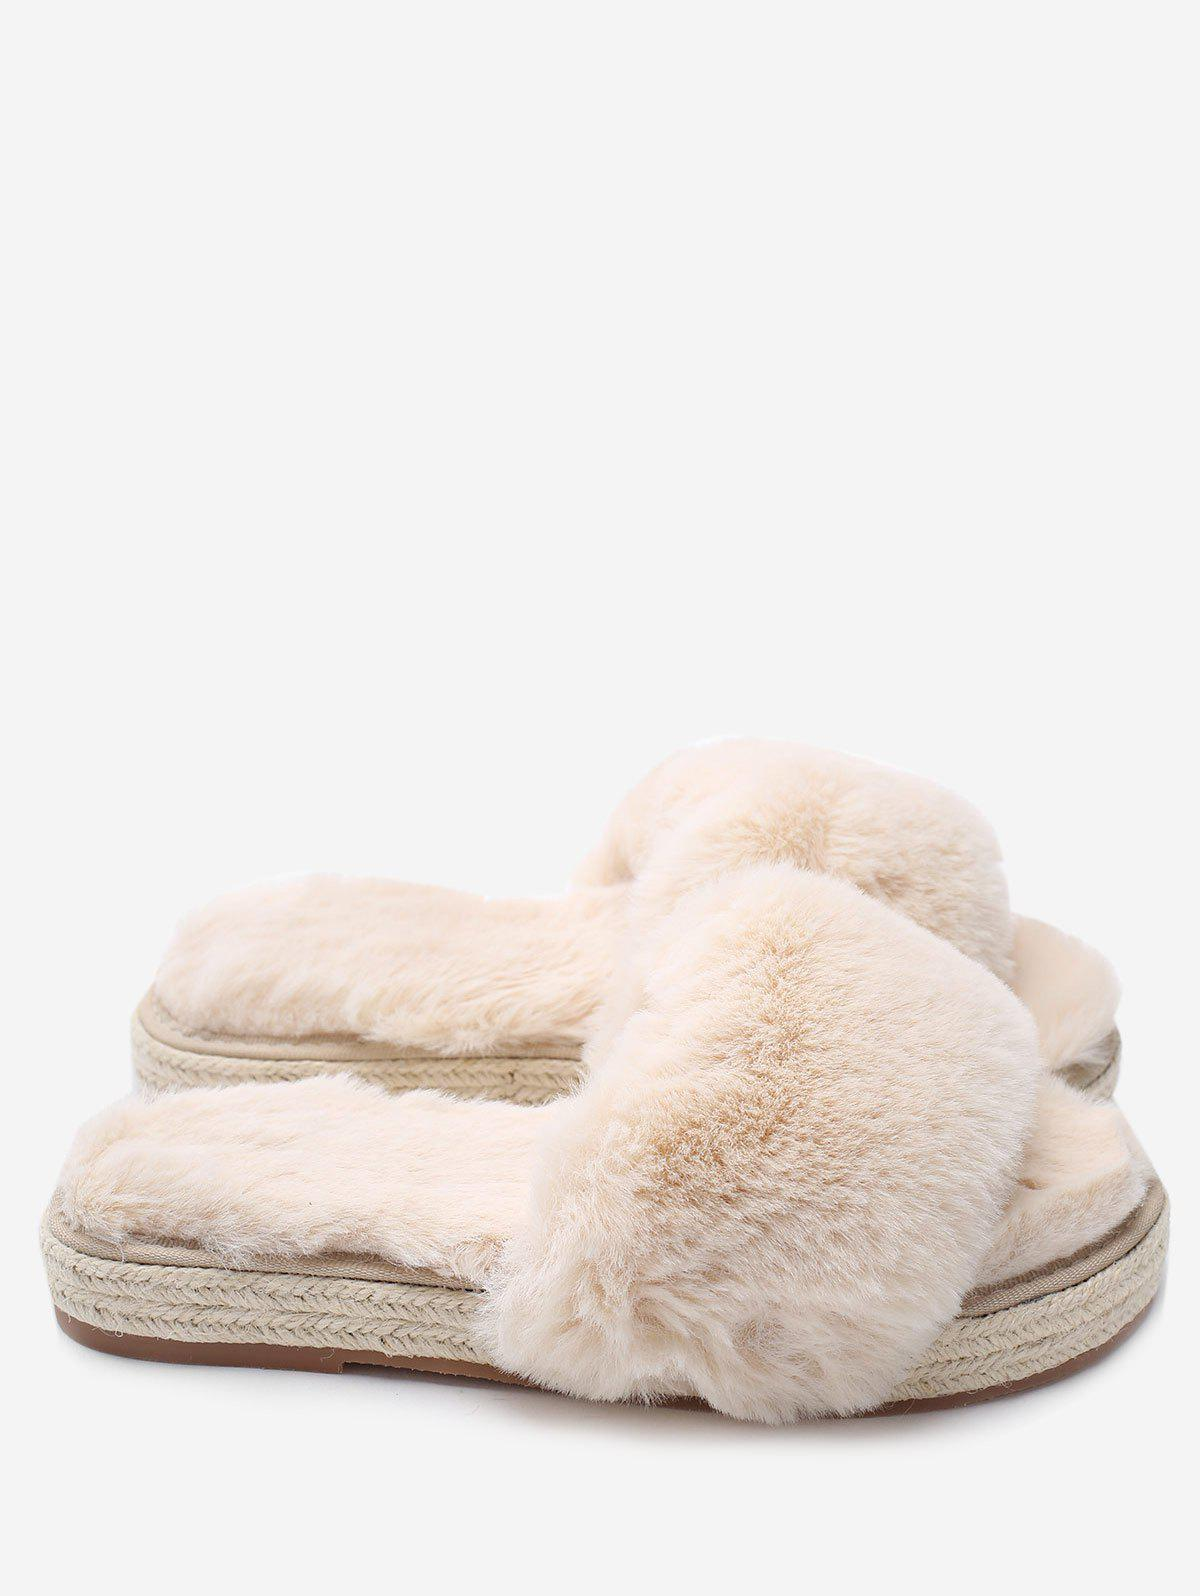 Espadrille Sole Faux Fur Slippers - APRICOT 39